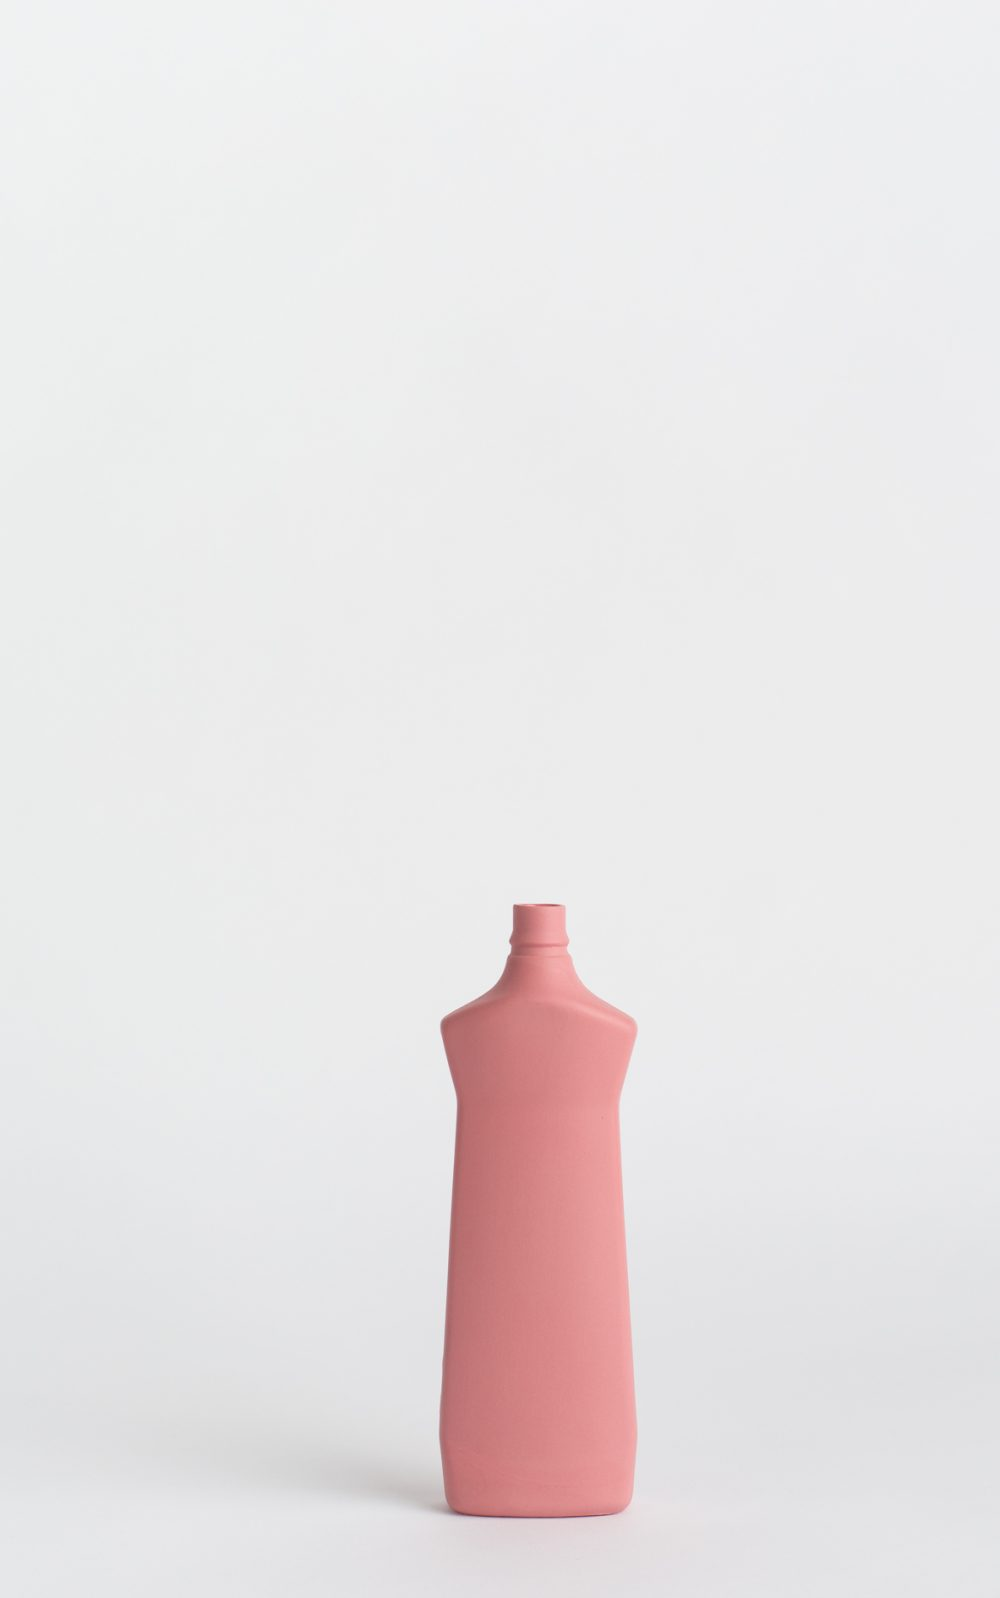 bottle vase #1 dark pink